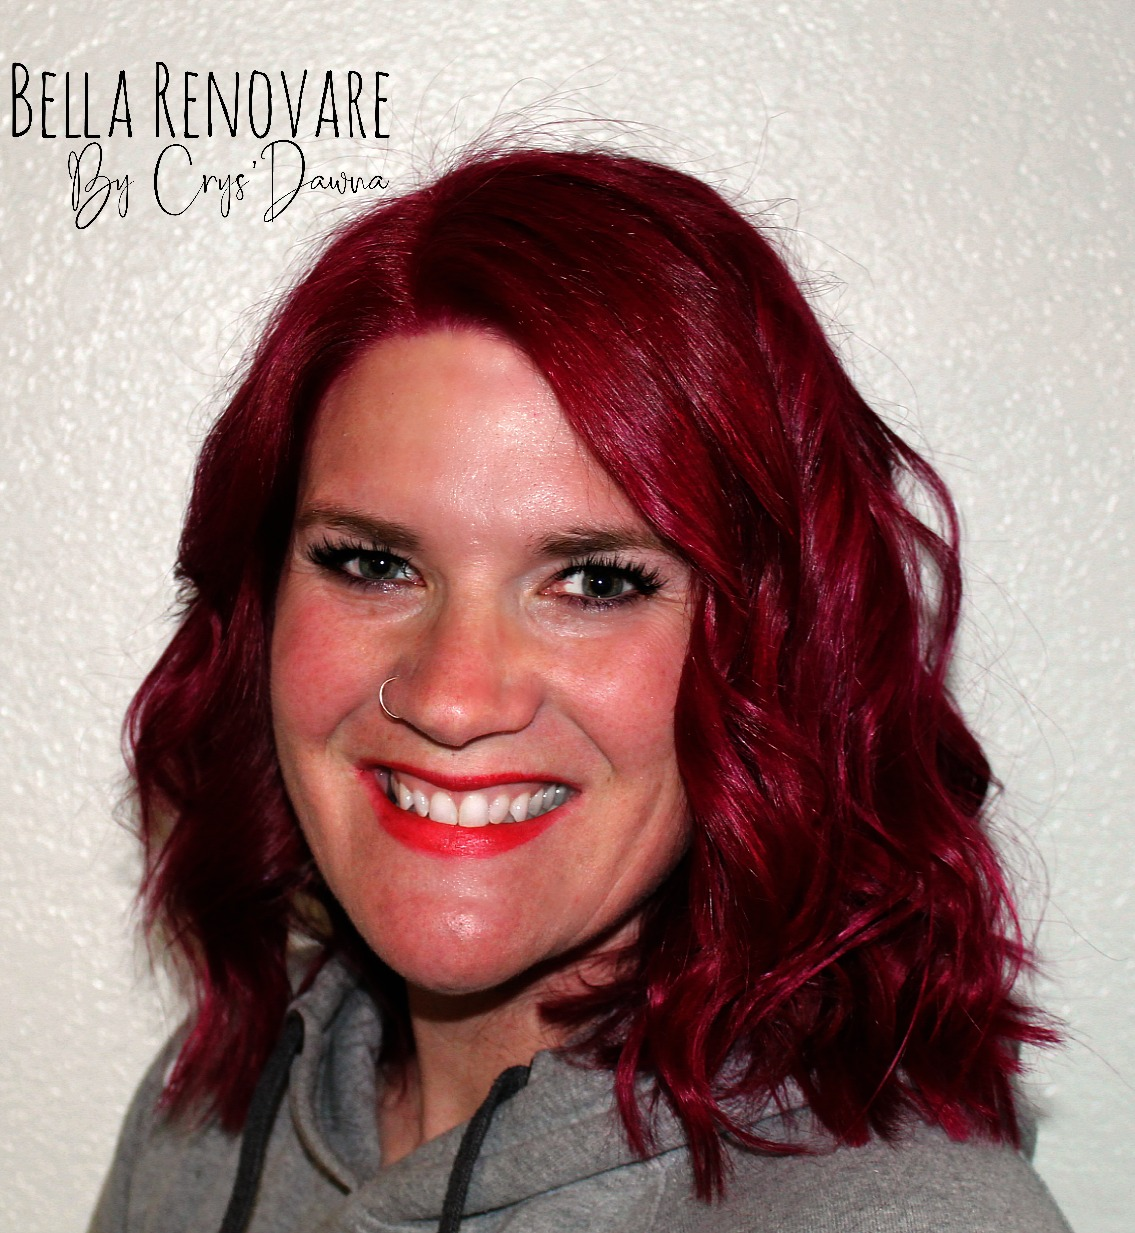 Hi everyone!!! It's been a while since I have re-introduced myself! My name is Crys'Dawna, I am the owner and creator of Bella Renovare! I am a free spirited gypsy inspiration dealer, who loves to laugh and is obsessed with color! I am a mom of two little kids, a veteran, living kidney donor. My education background is psychology. I have a Masters in Psychology and a B.S in Social Psychology. I love to teach and inspire others! I have Magenta hair so you can always spot me, normally I have funky glasses and am covered in paint!! Thank you so much for following me!! I am excited you are in this adventure with me!!